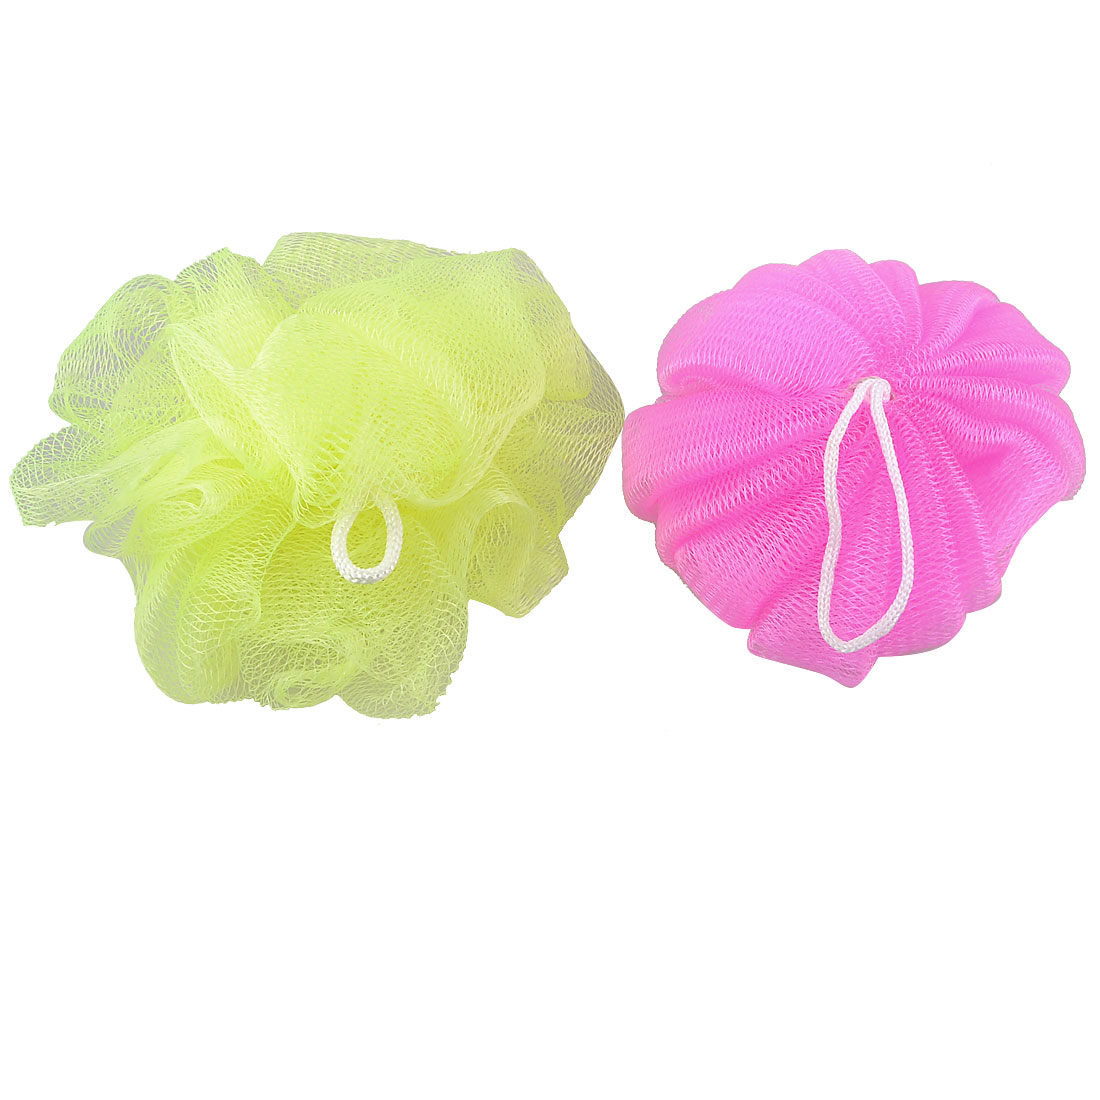 Body Wash Scrubber Nylon Meshy Bathing Bath Ball Shower Pouf Green Fuchsia 2 Pcs